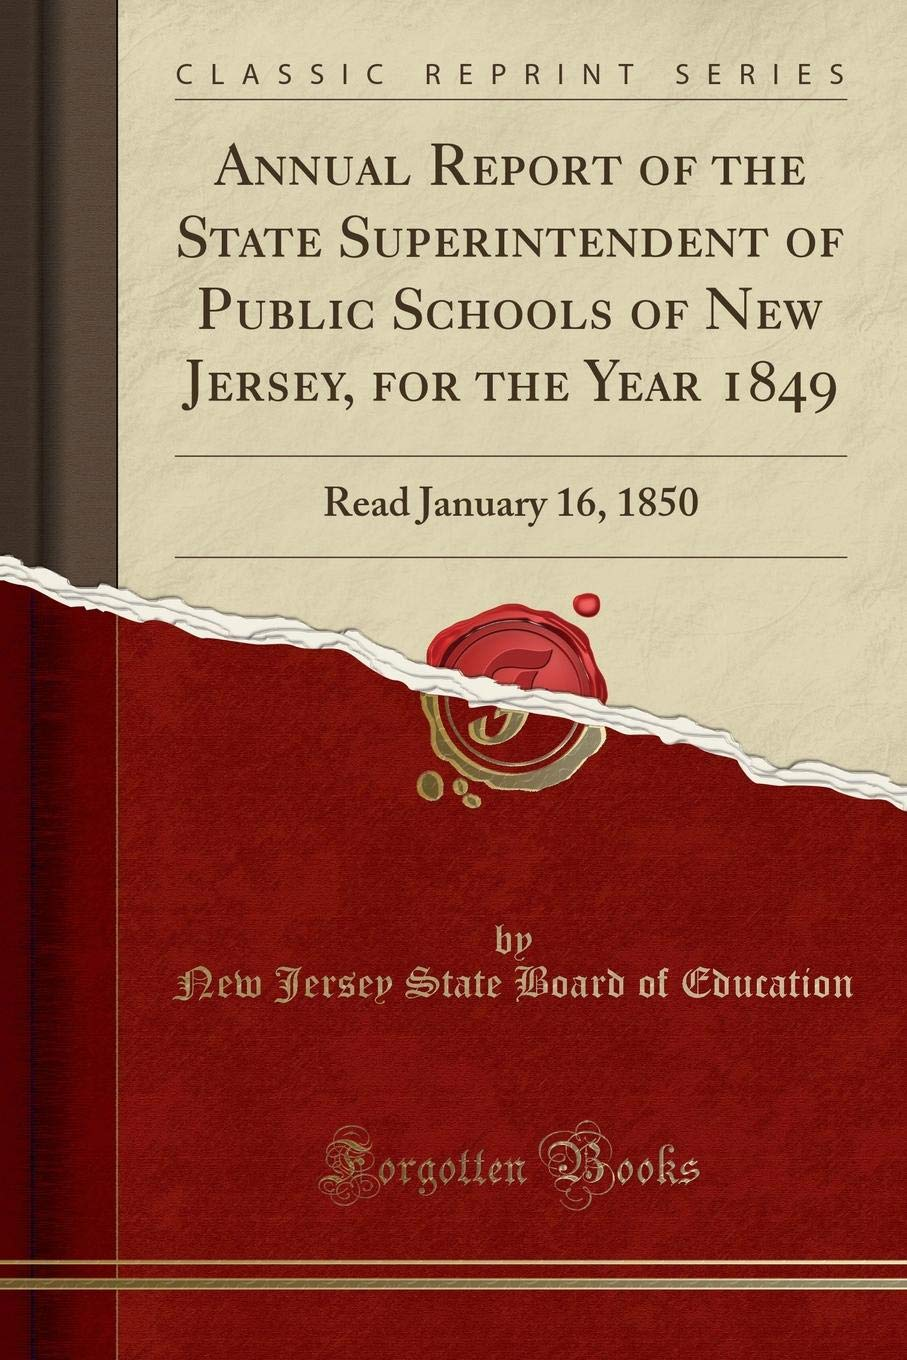 Download Annual Report of the State Superintendent of Public Schools of New Jersey, for the Year 1849: Read January 16, 1850 (Classic Reprint) pdf